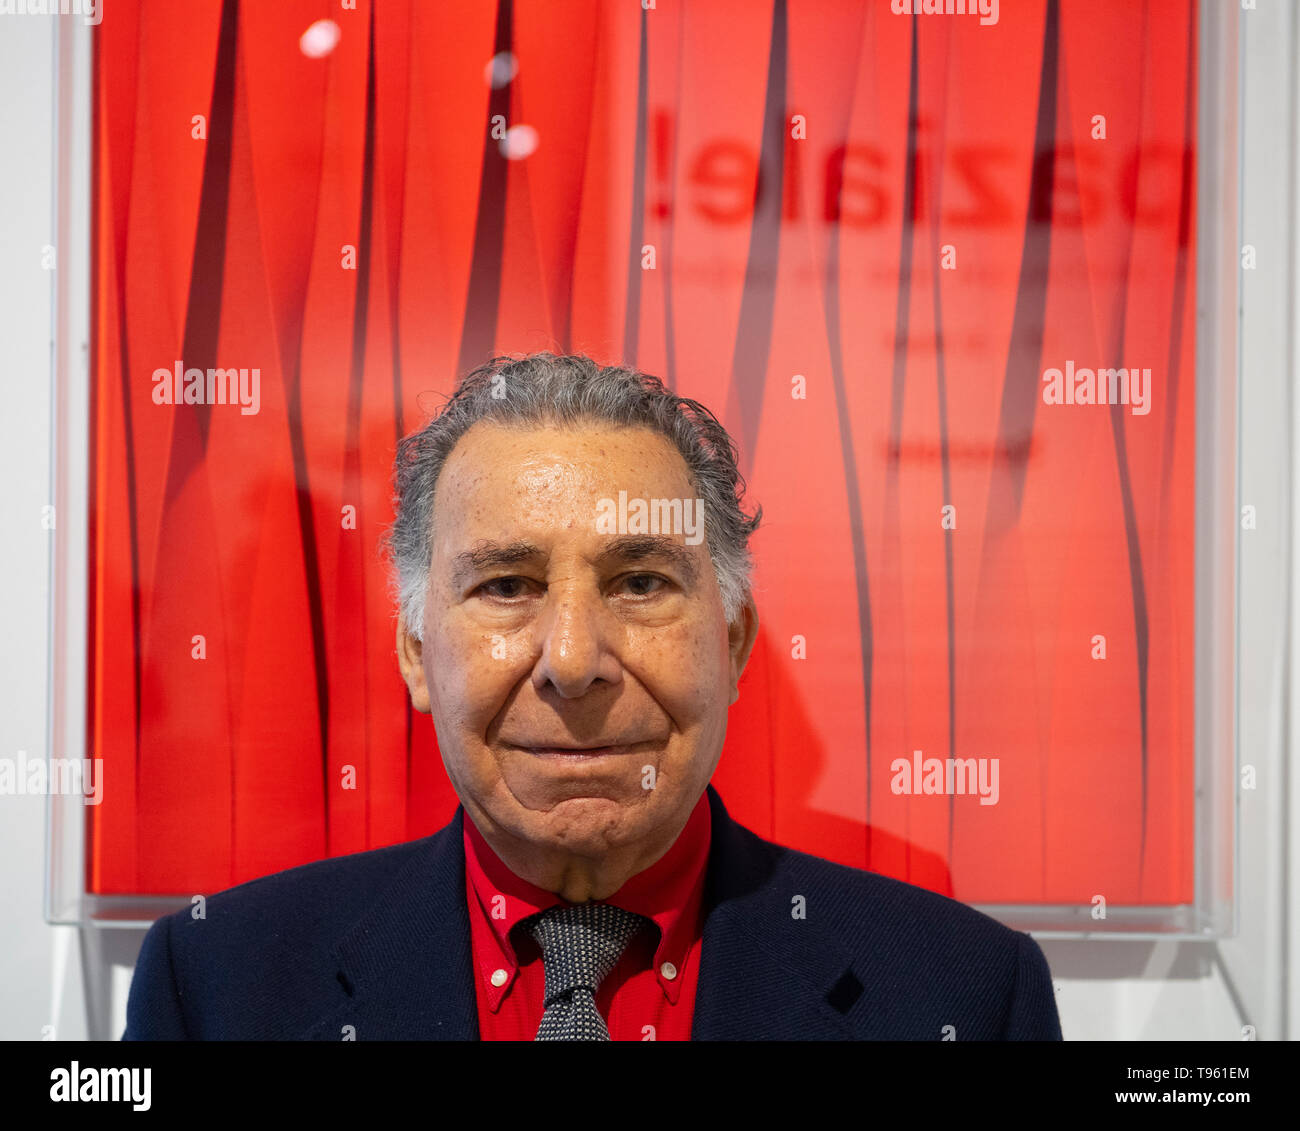 Opera Gallery, New Bond Street, London, UK. 17th May 2019. Organised in collaboration with the Italian Embassy in London, the exhibition includes 40 iconic canvases by Lucio Fontana, Agostino Bonalumi and Enrico Castellani among others, tapping into the unprecedented attention Italian post-war art is currently receiving. Image: Pino Manos, one of the last surviving artists of Spatialism, in front of his canvas Sincronicita rosso vibrante, 2018. Credit: Malcolm Park/Alamy Live News. - Stock Image